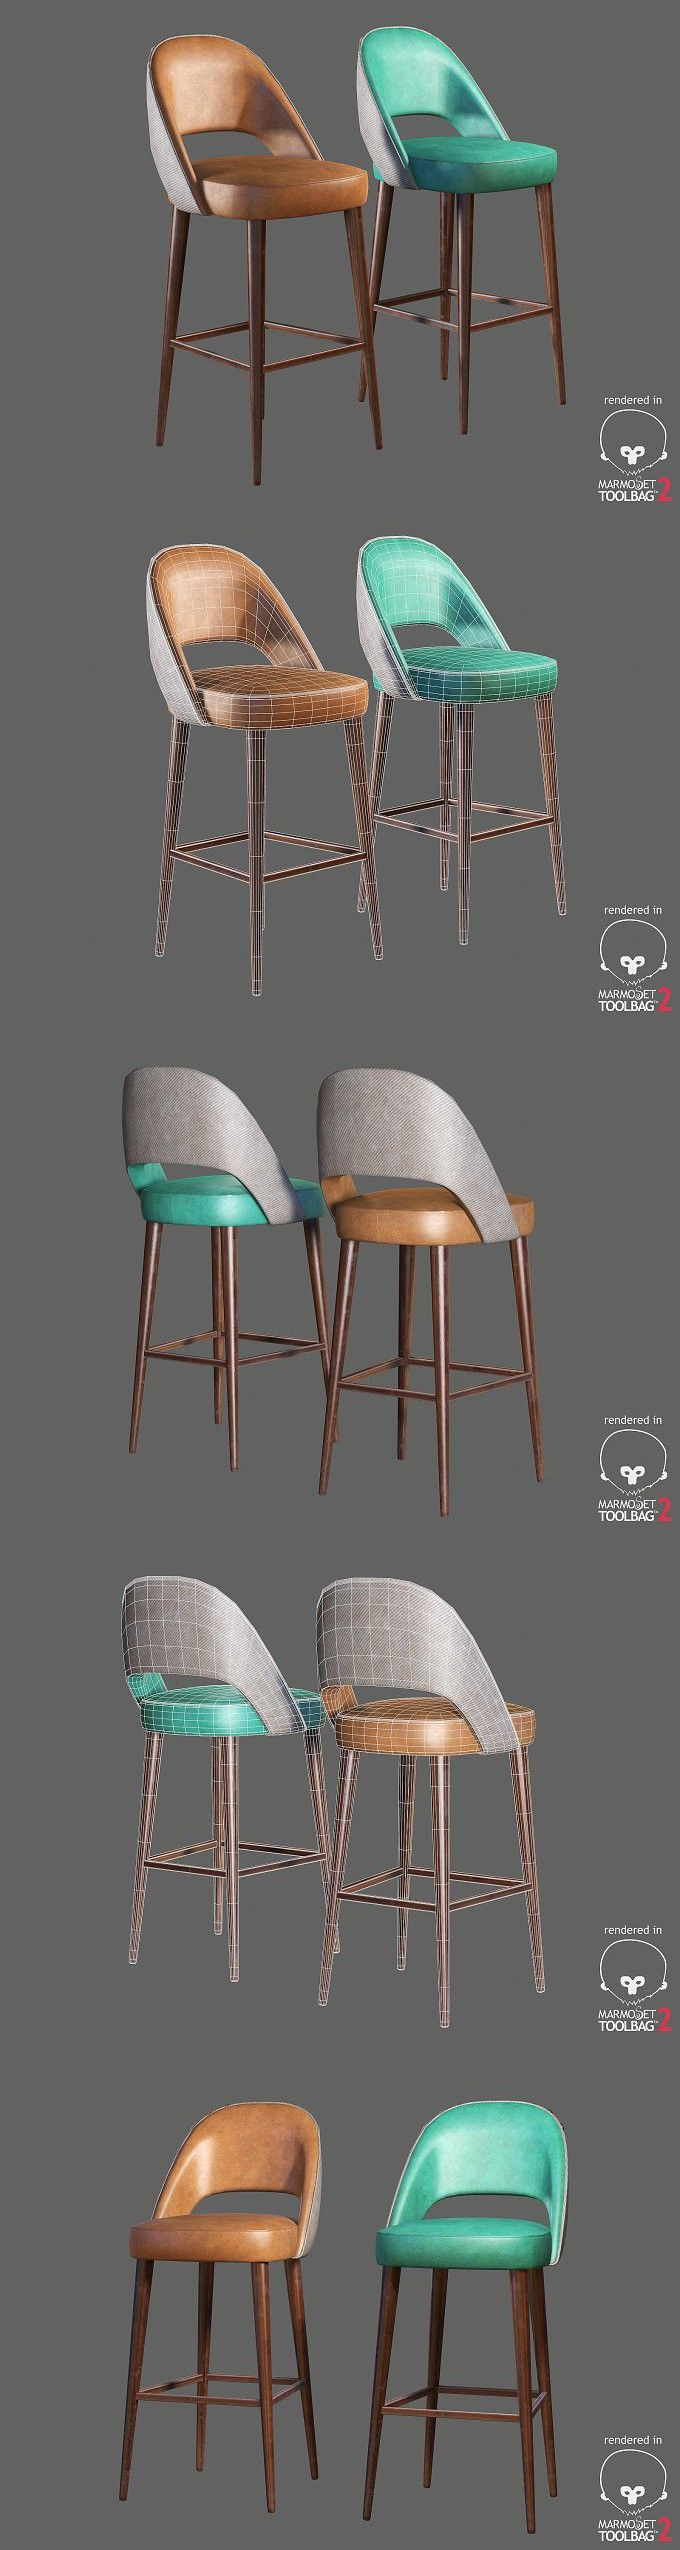 Mambo AVA chair . 3D Furniture